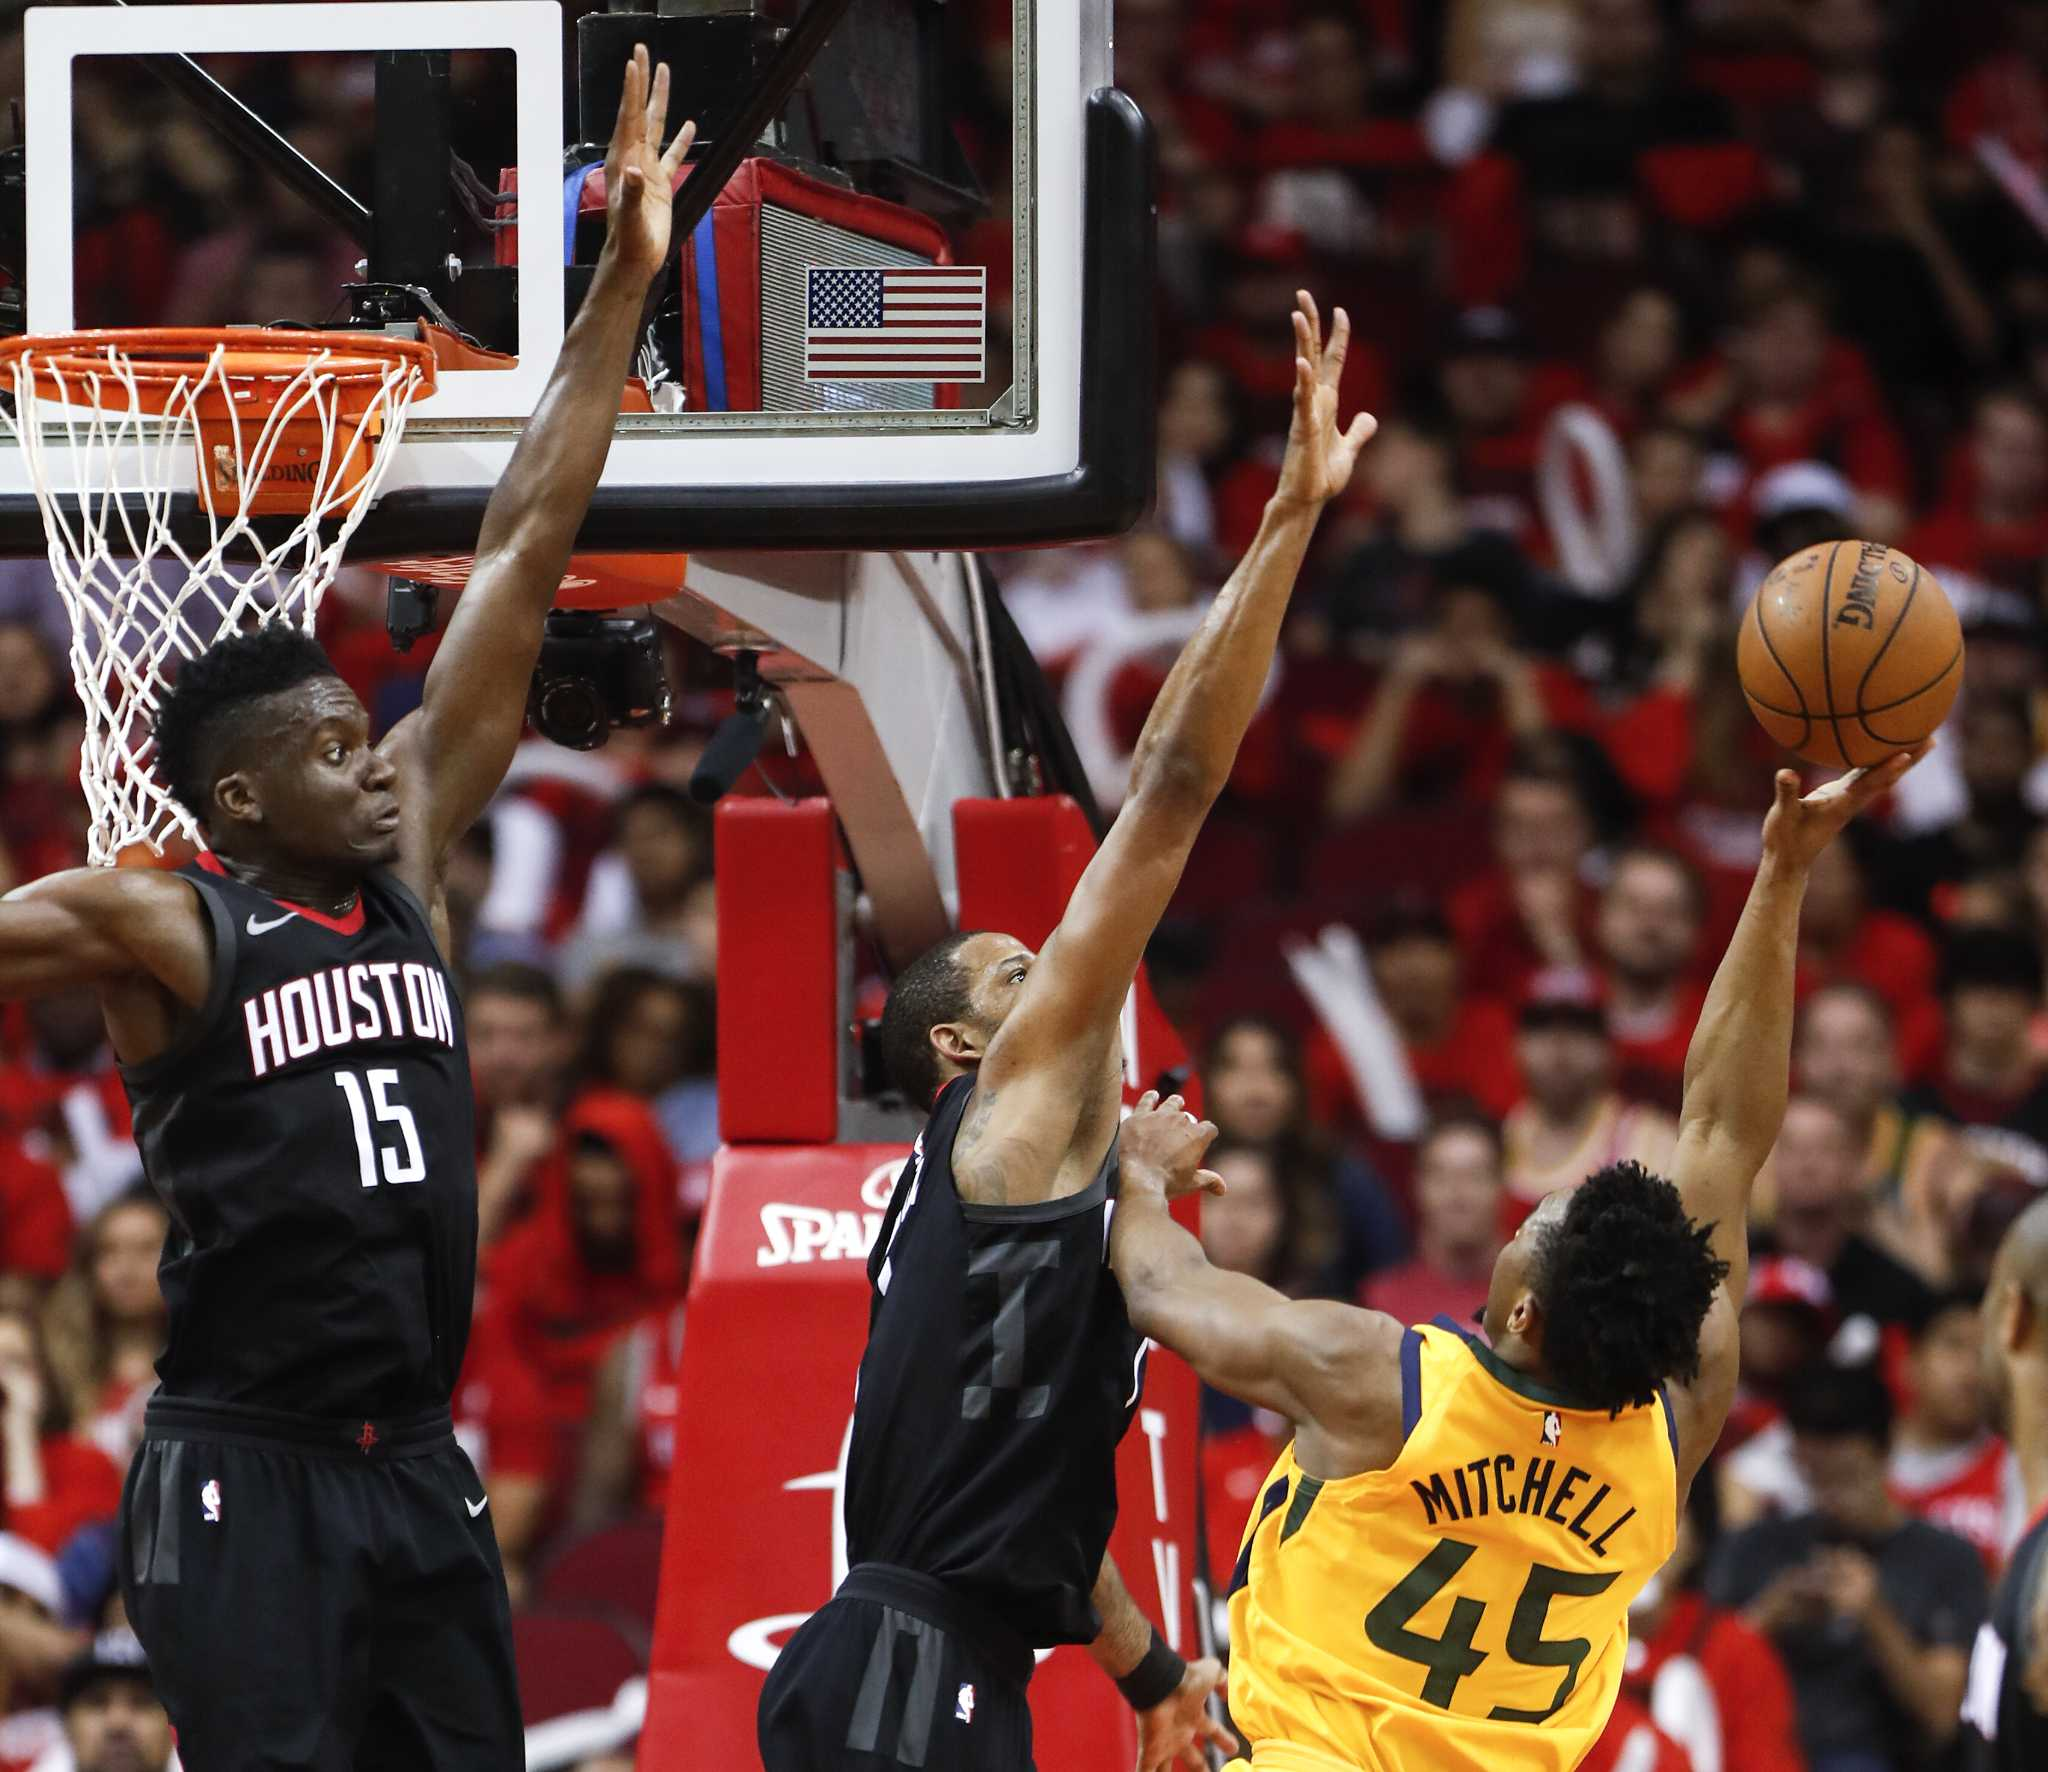 Rockets Jazz Game 1: The Defensive Move The Rockets Made To Stop Donovan